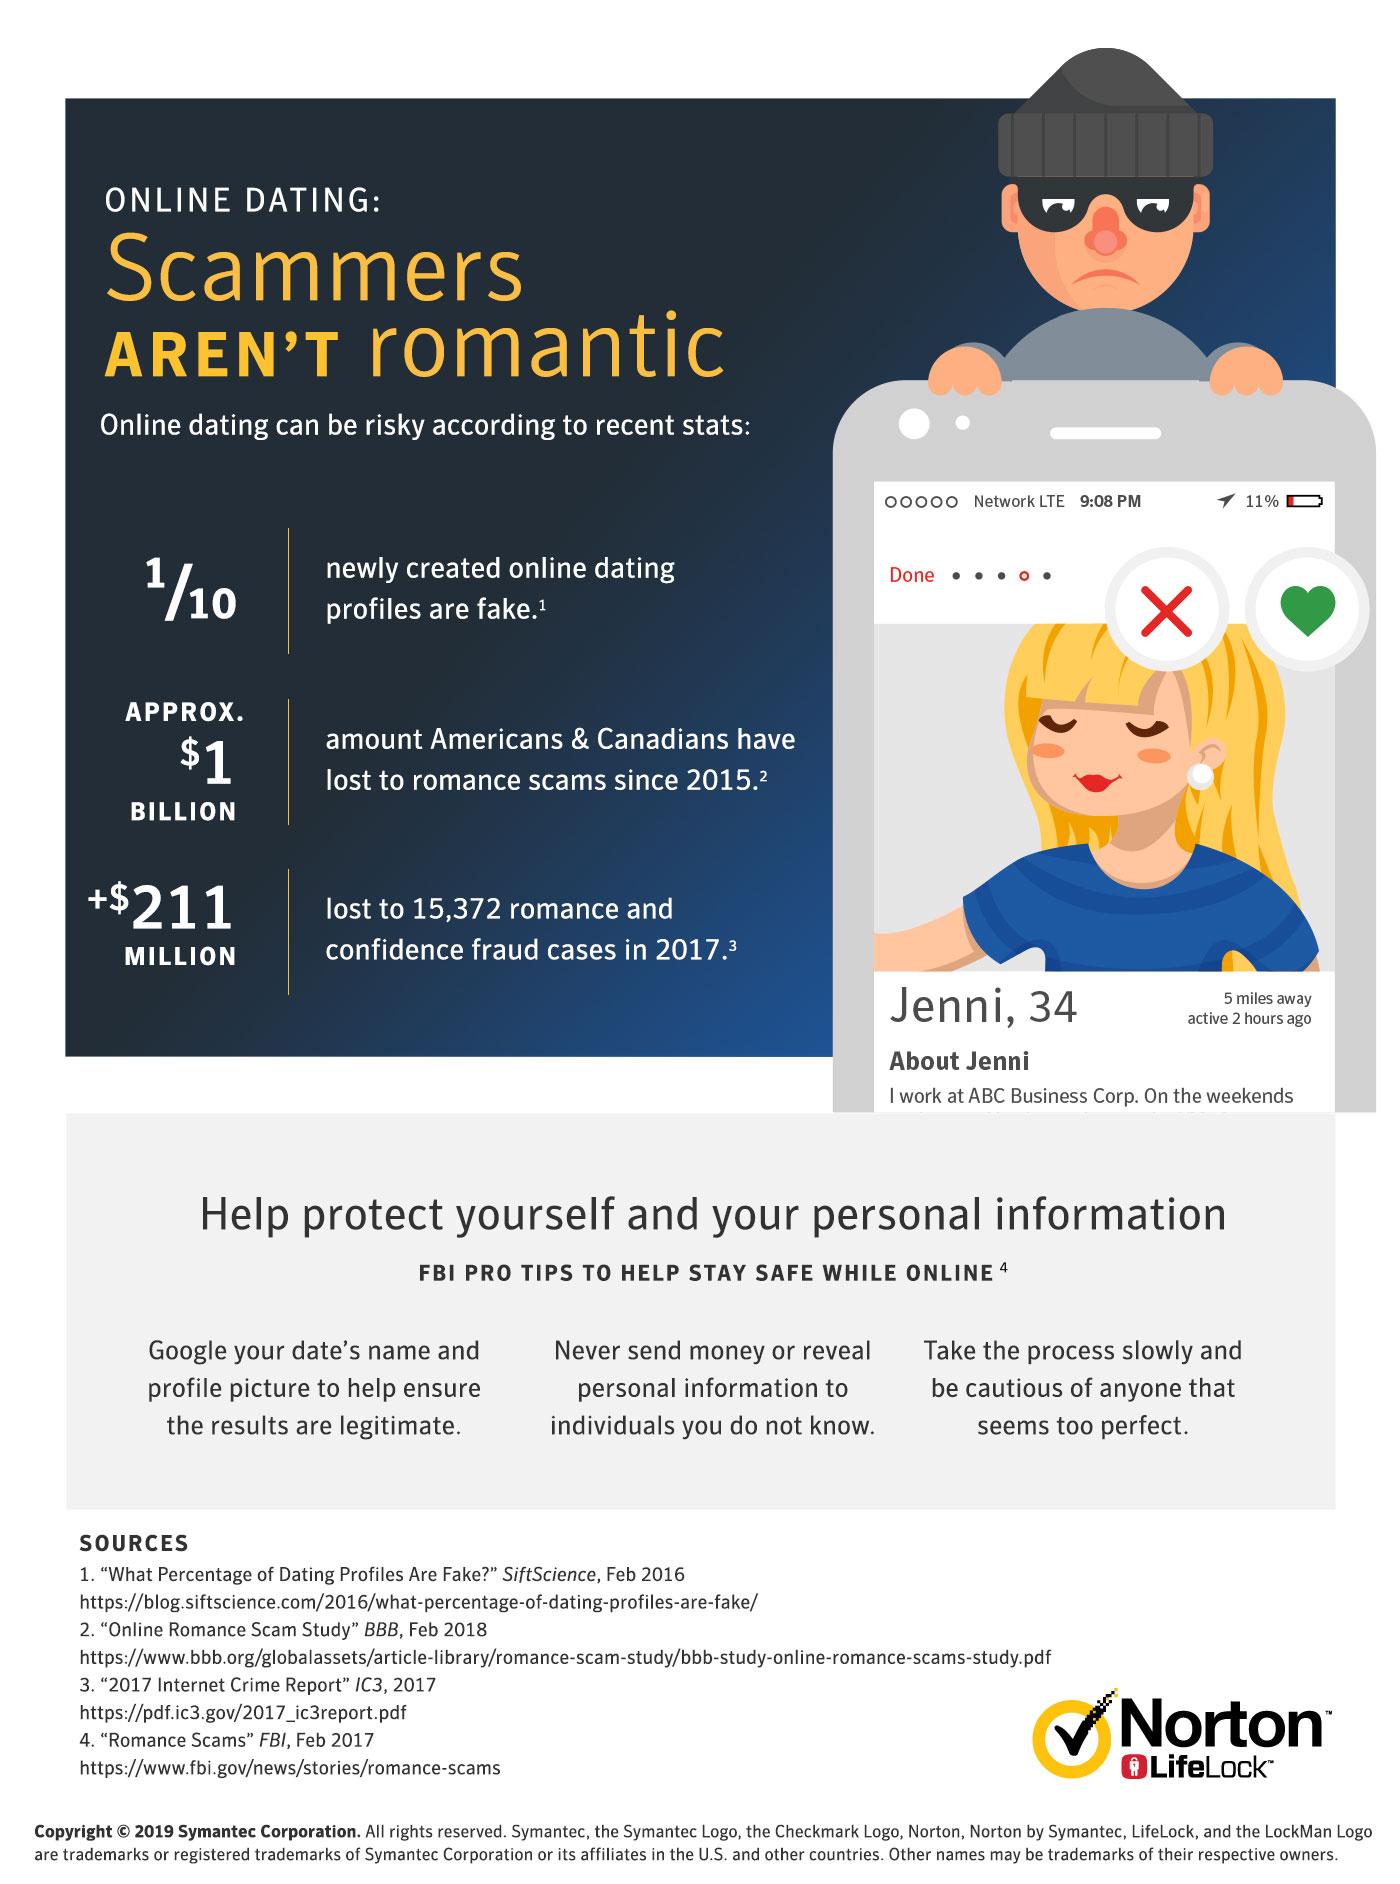 How out can a dating scan be